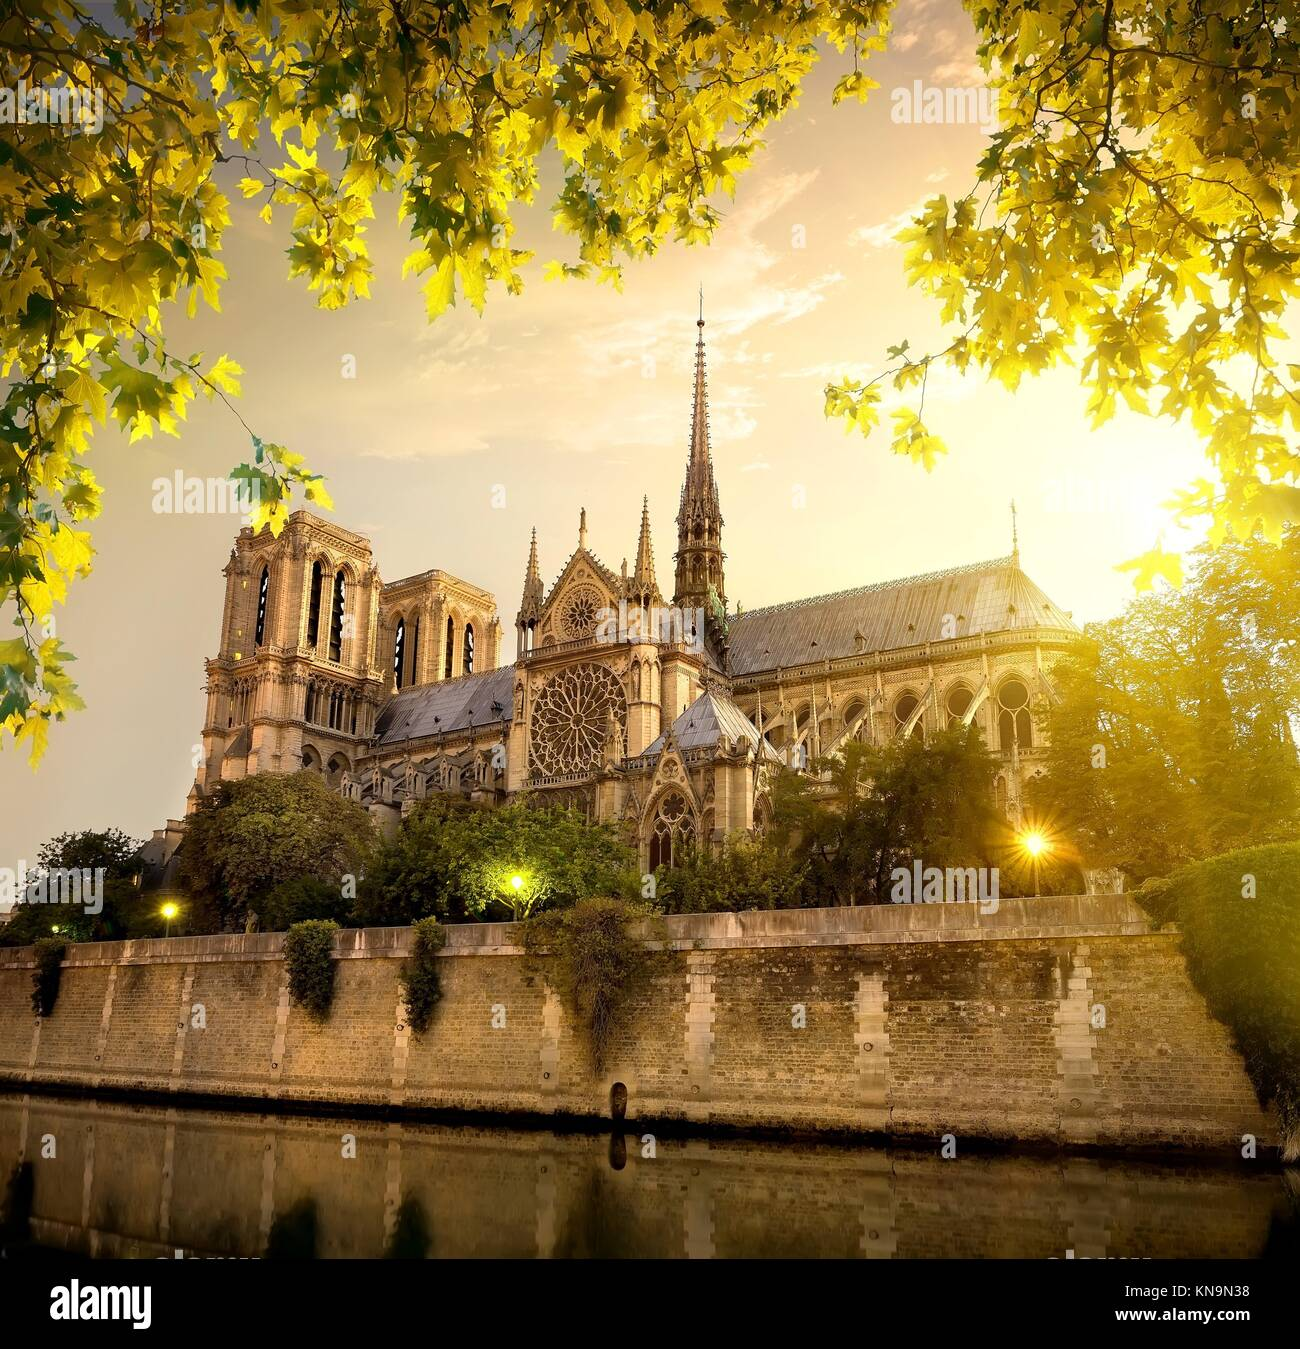 Notre Dame de Paris au coucher du soleil, la France. Photo Stock